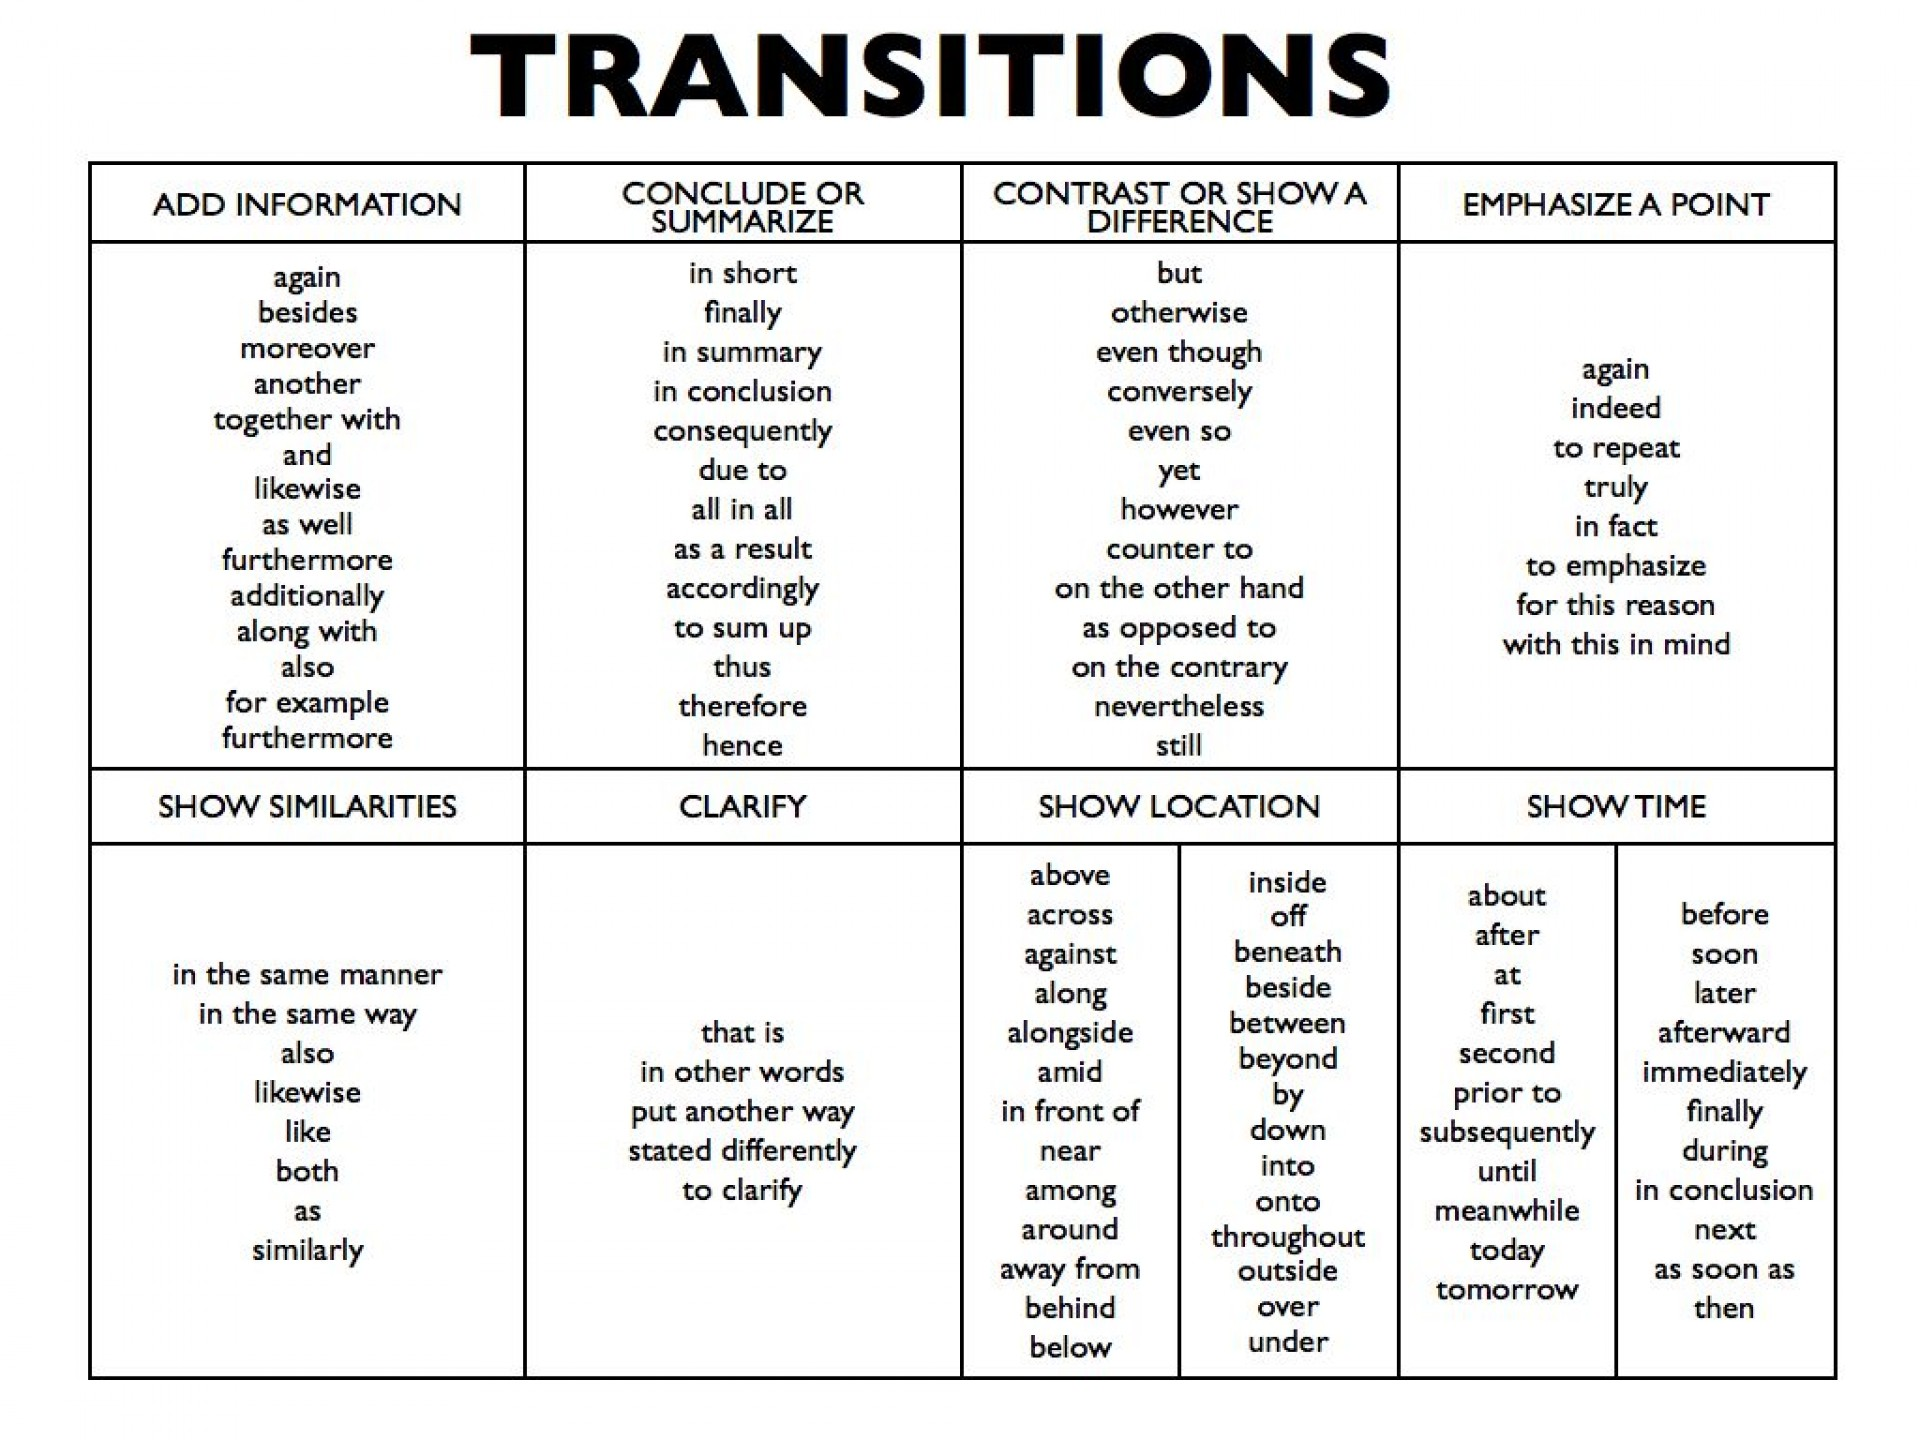 005 Essay Example Transitions 4995883 1 Orig Archaicawful Transition Words In Spanish Comparative Sentences List 1920